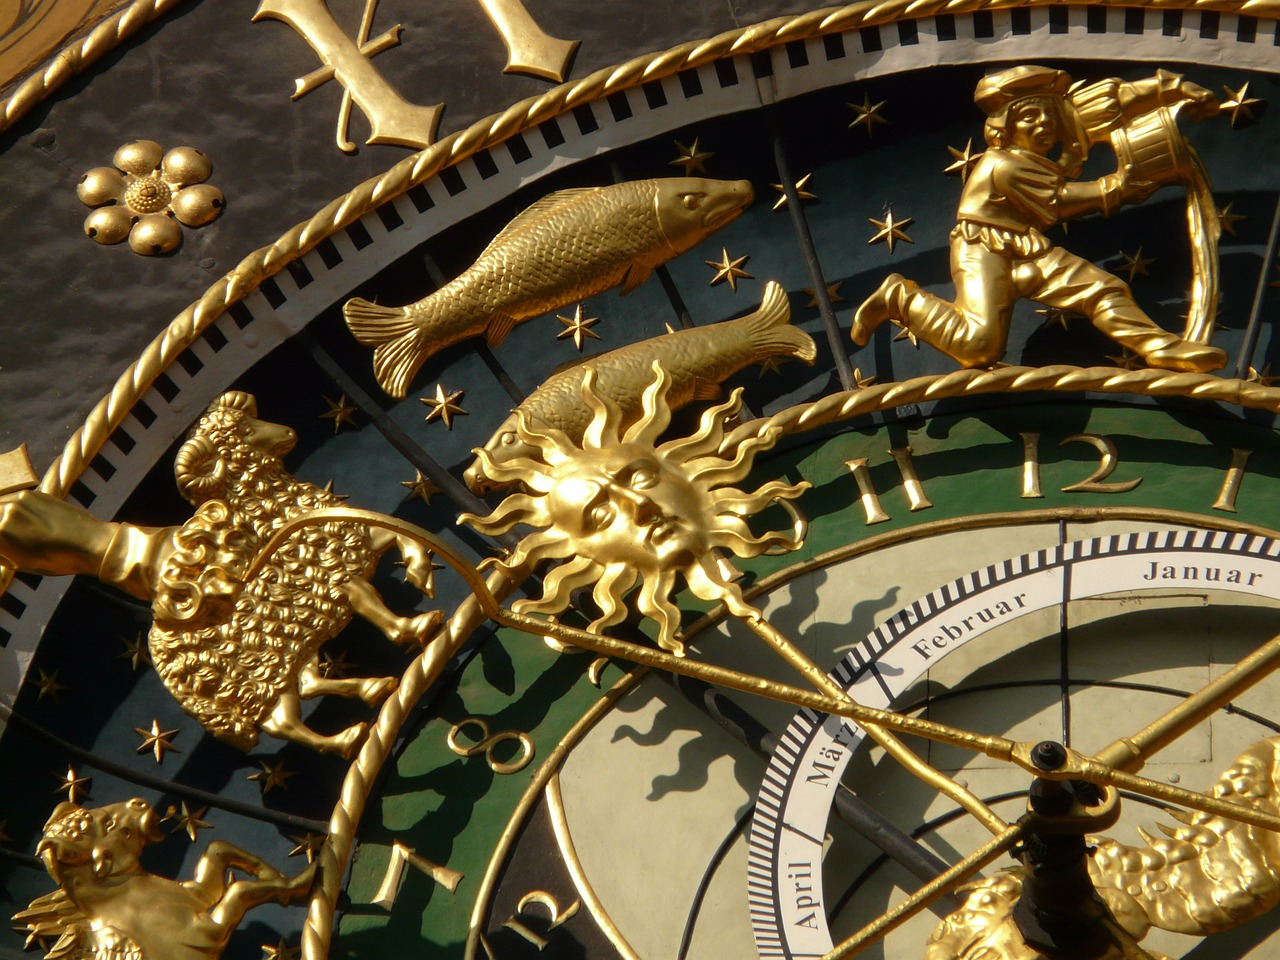 astronomical clock,clock,time,time of,date,day,month,year,zodiac,zodiac ring,isaak habrecht,moon phases,ulm,town hall,horology,watchmaker,dial,pointer,time indicating,seasons,macro,close,golden,gold,free pictures, free photos, free images, royalty free, free illustrations, public domain